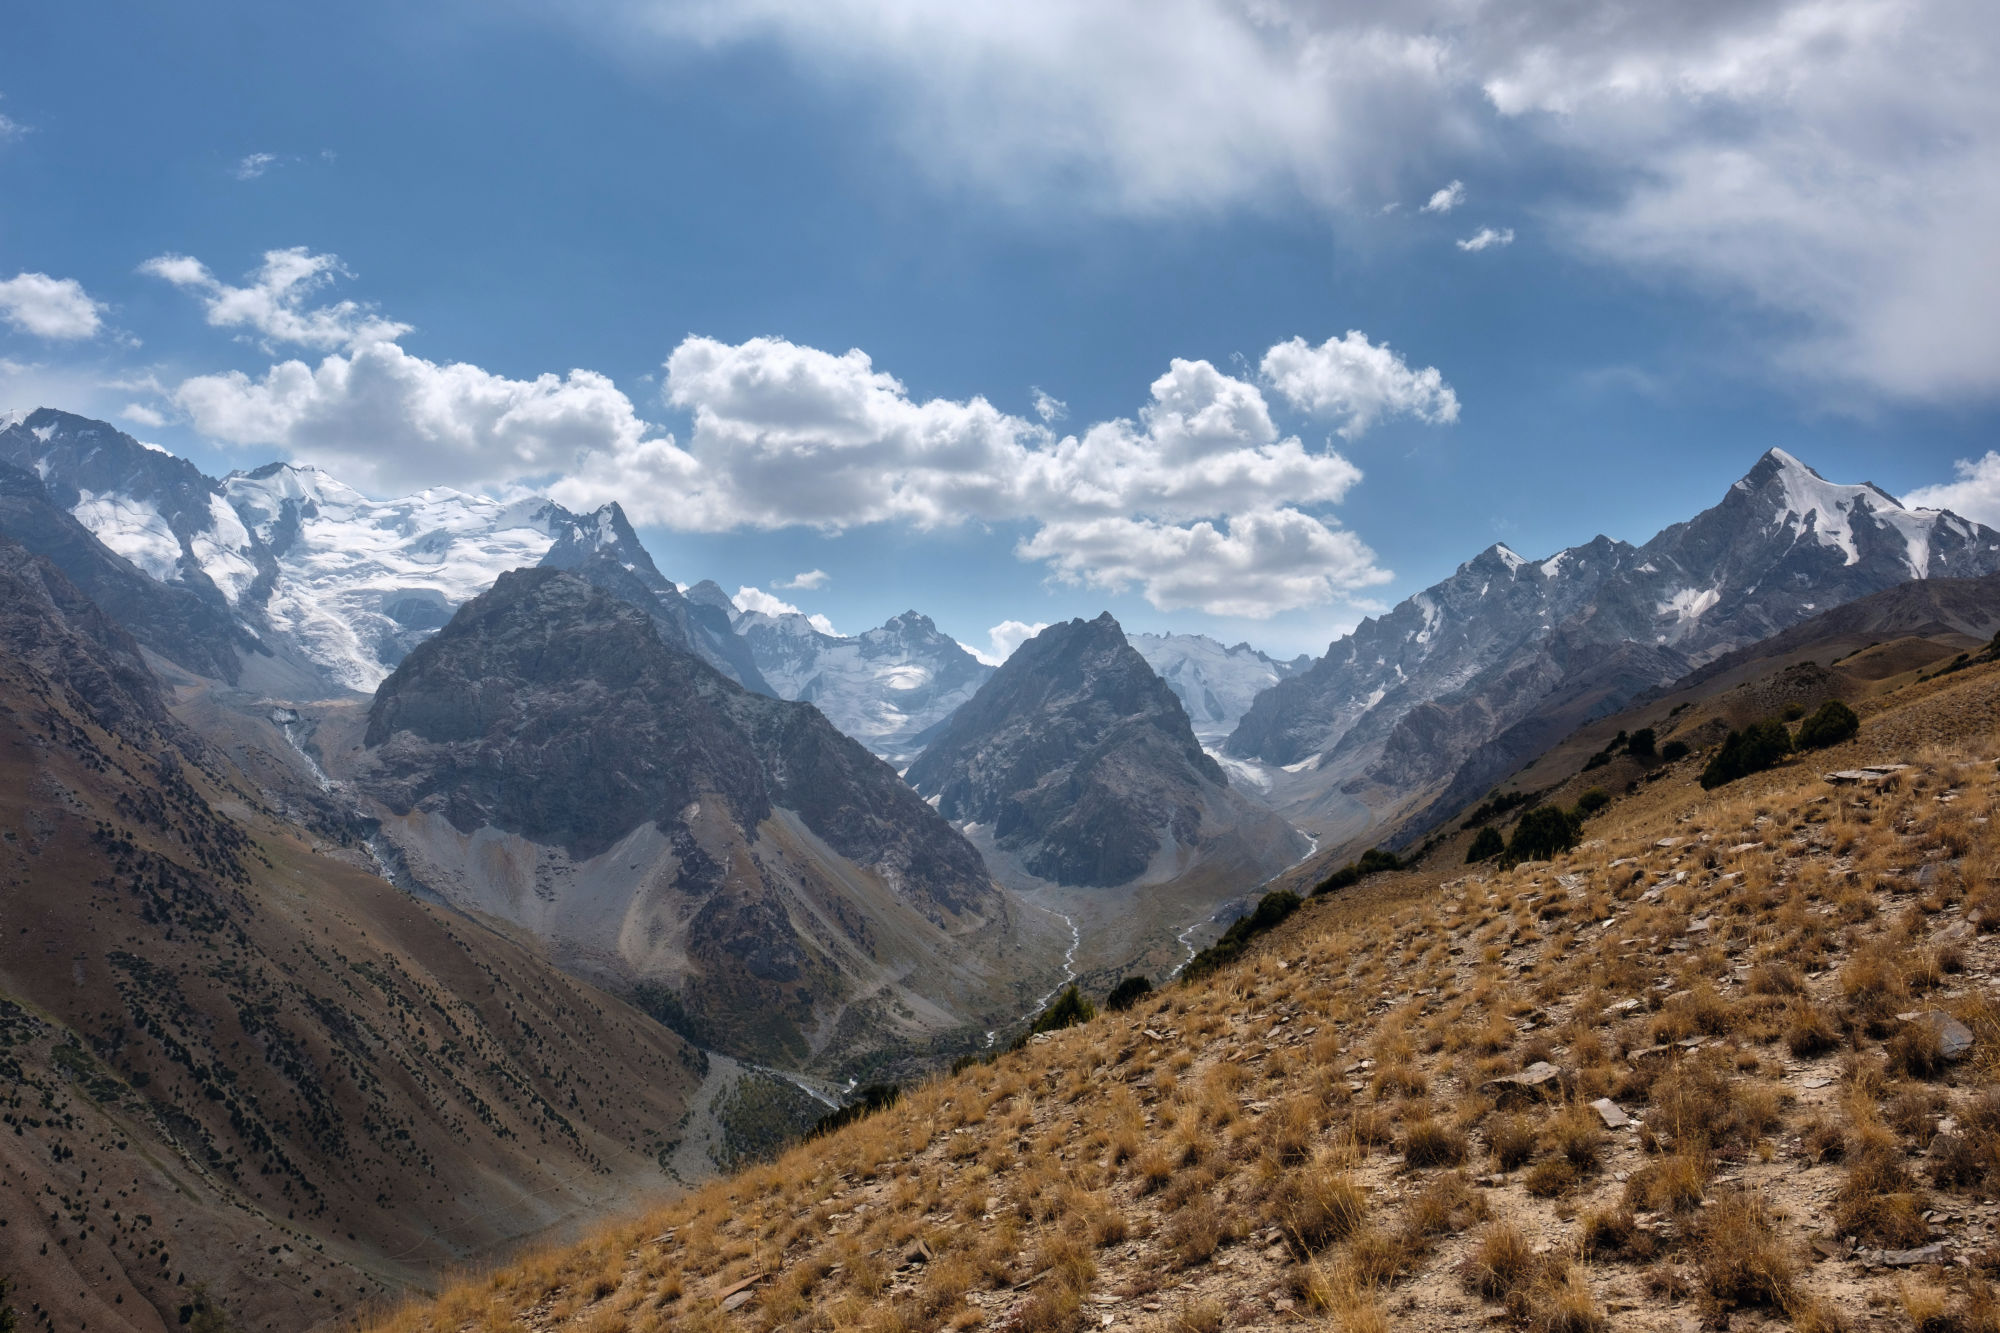 Swarovski Optik New perspectives – Tajikistan mountain landscape nature conservation